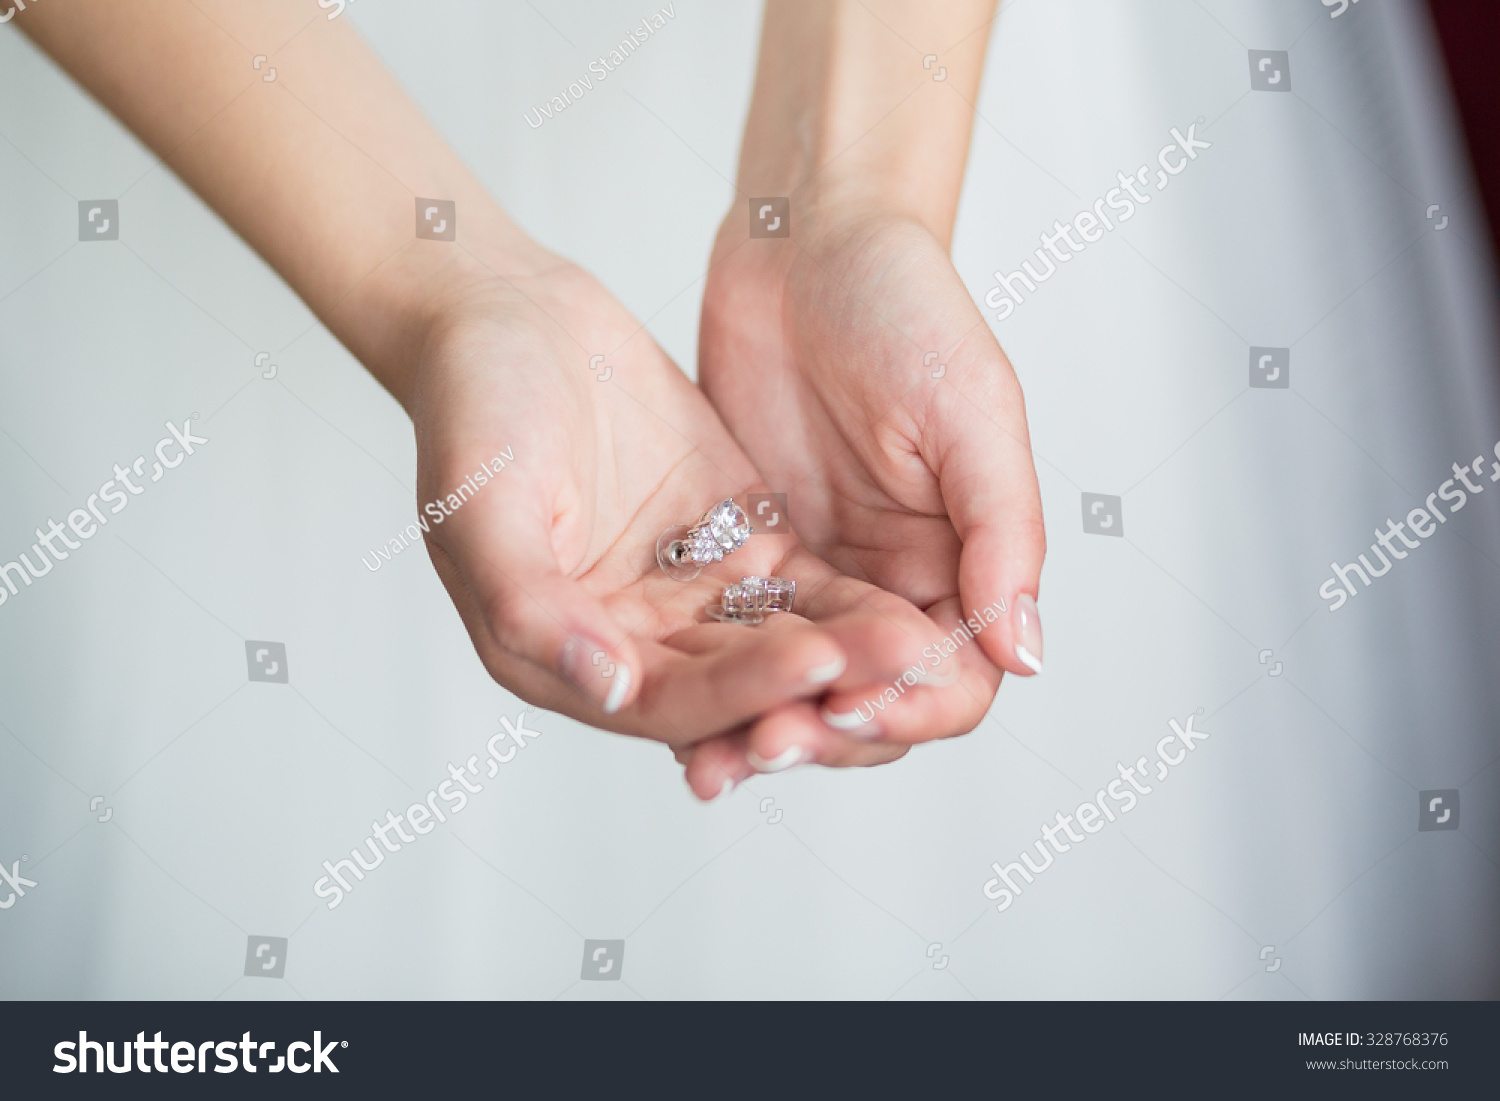 Newly wed couple\'s hands with wedding rings | EZ Canvas